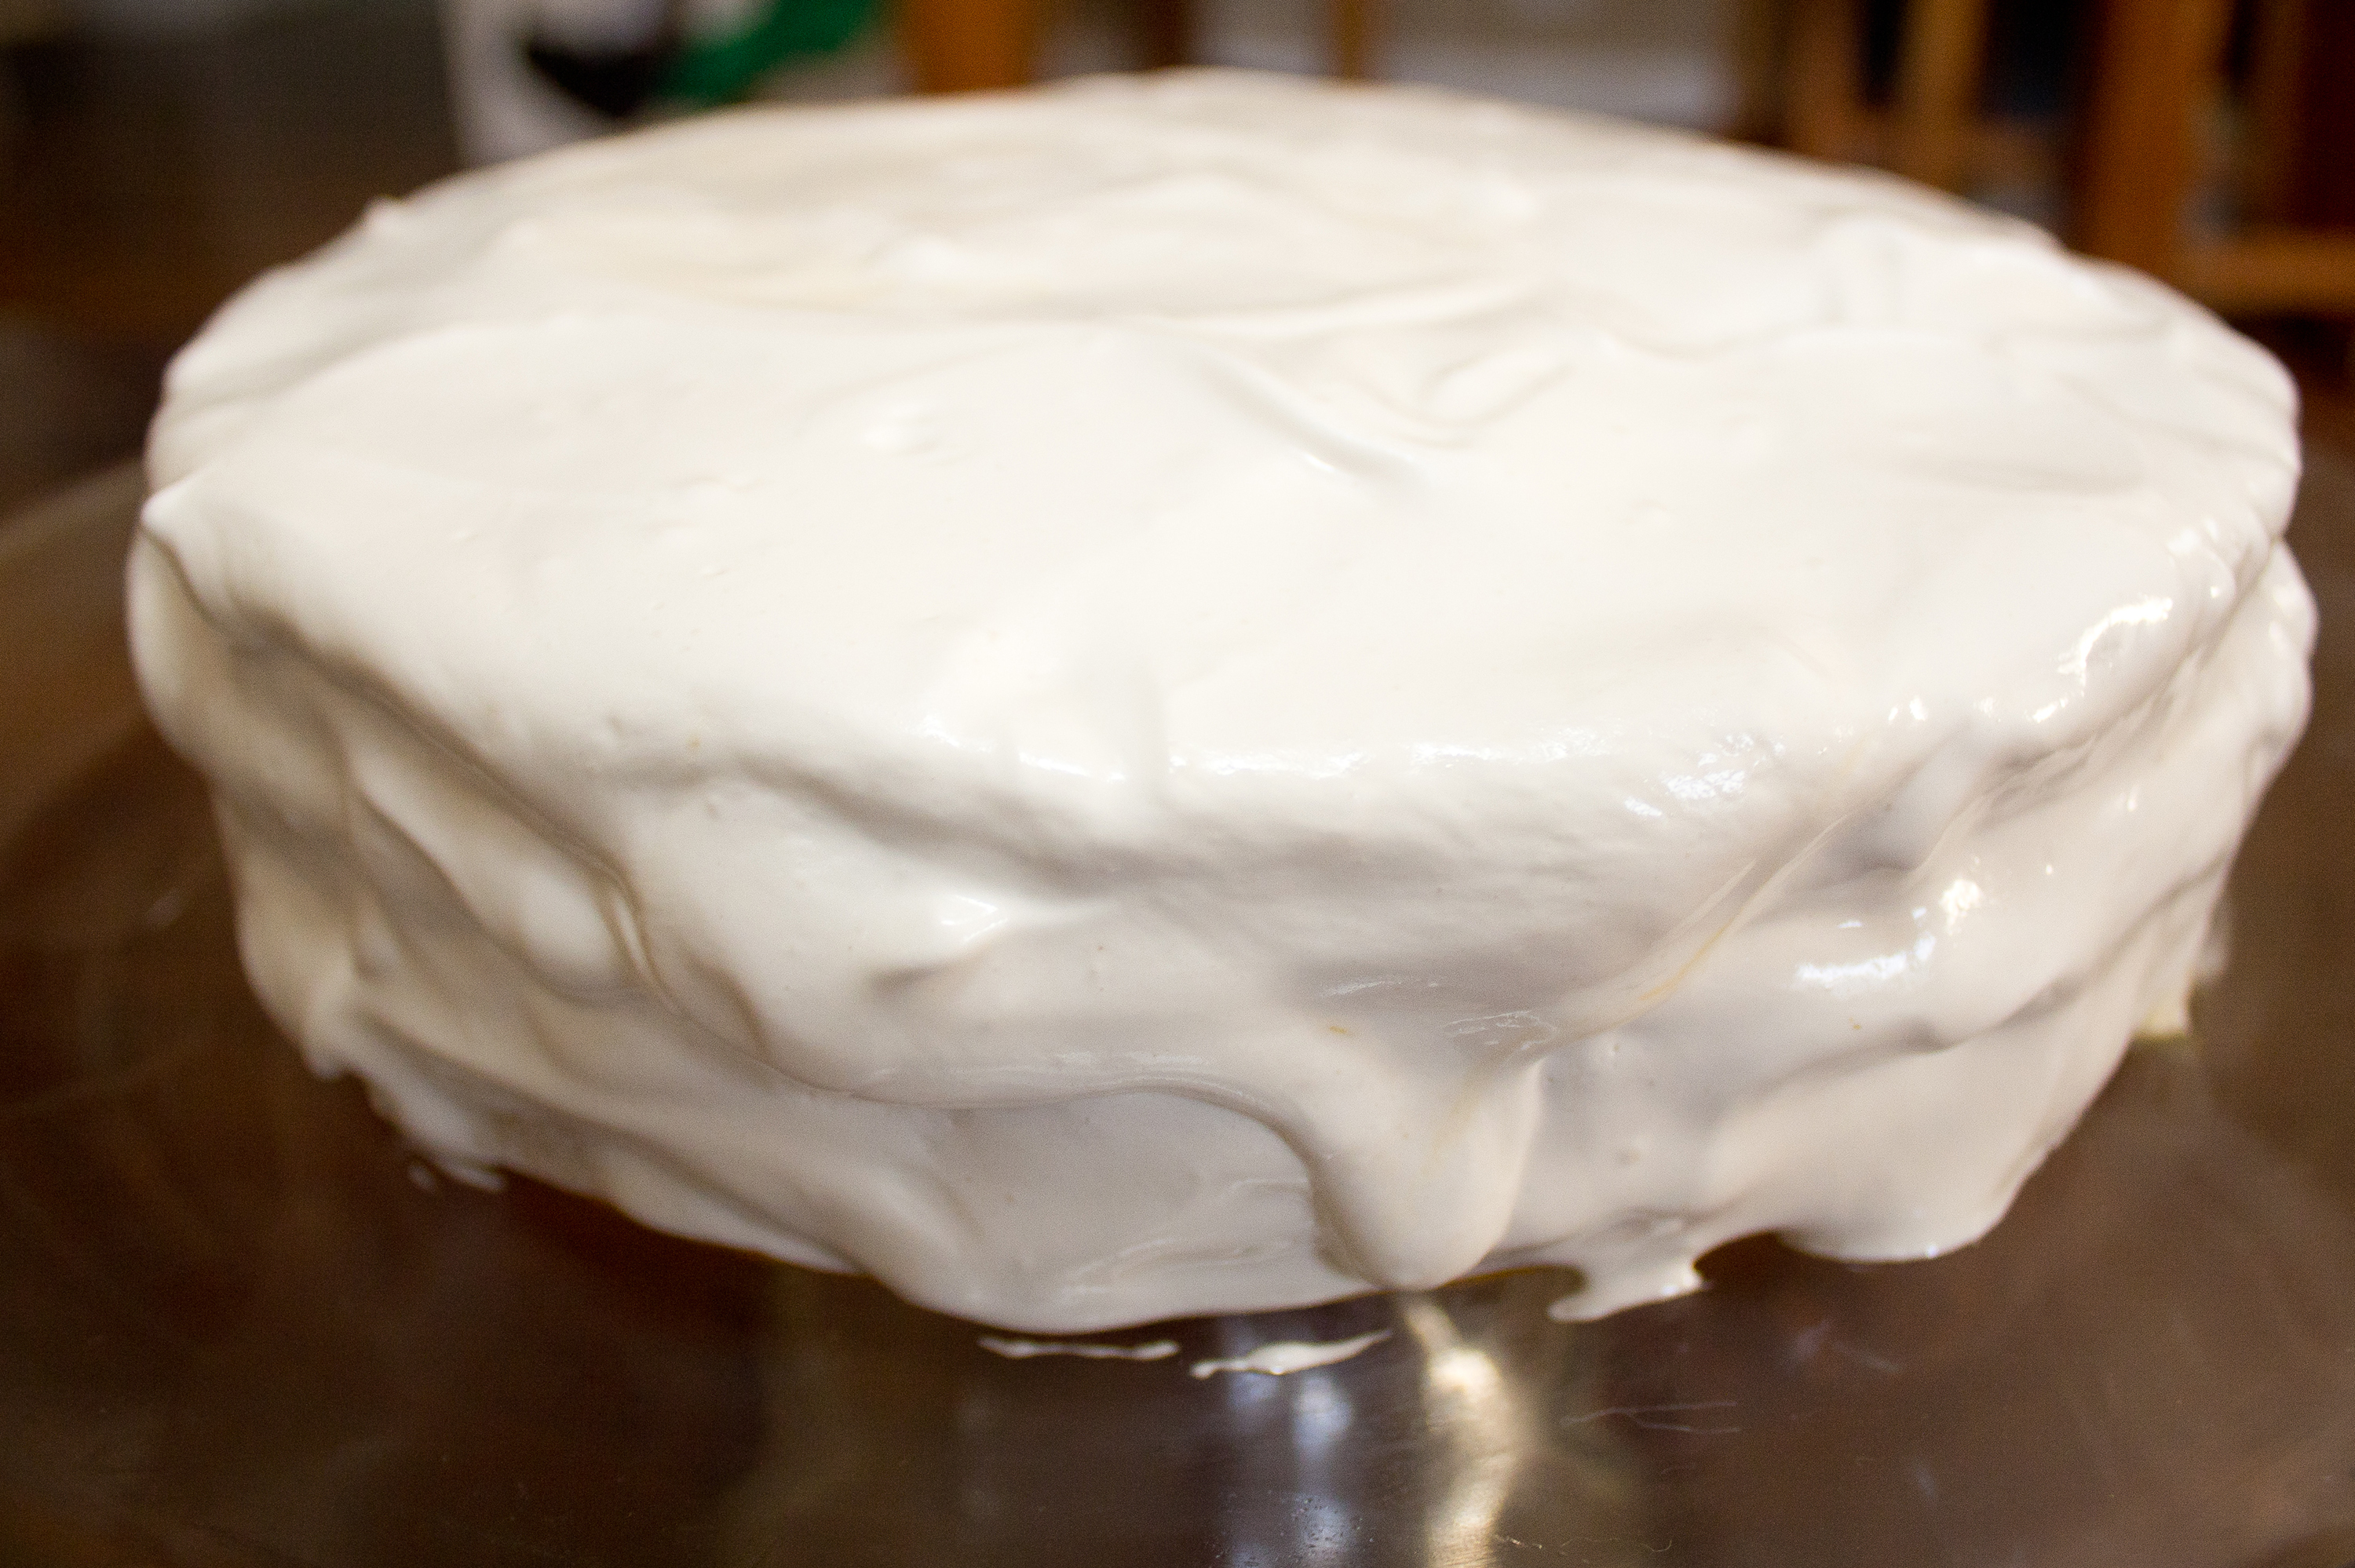 What Ever Happened To The Boozy Cake In 'To Kill A Mockingbird'?